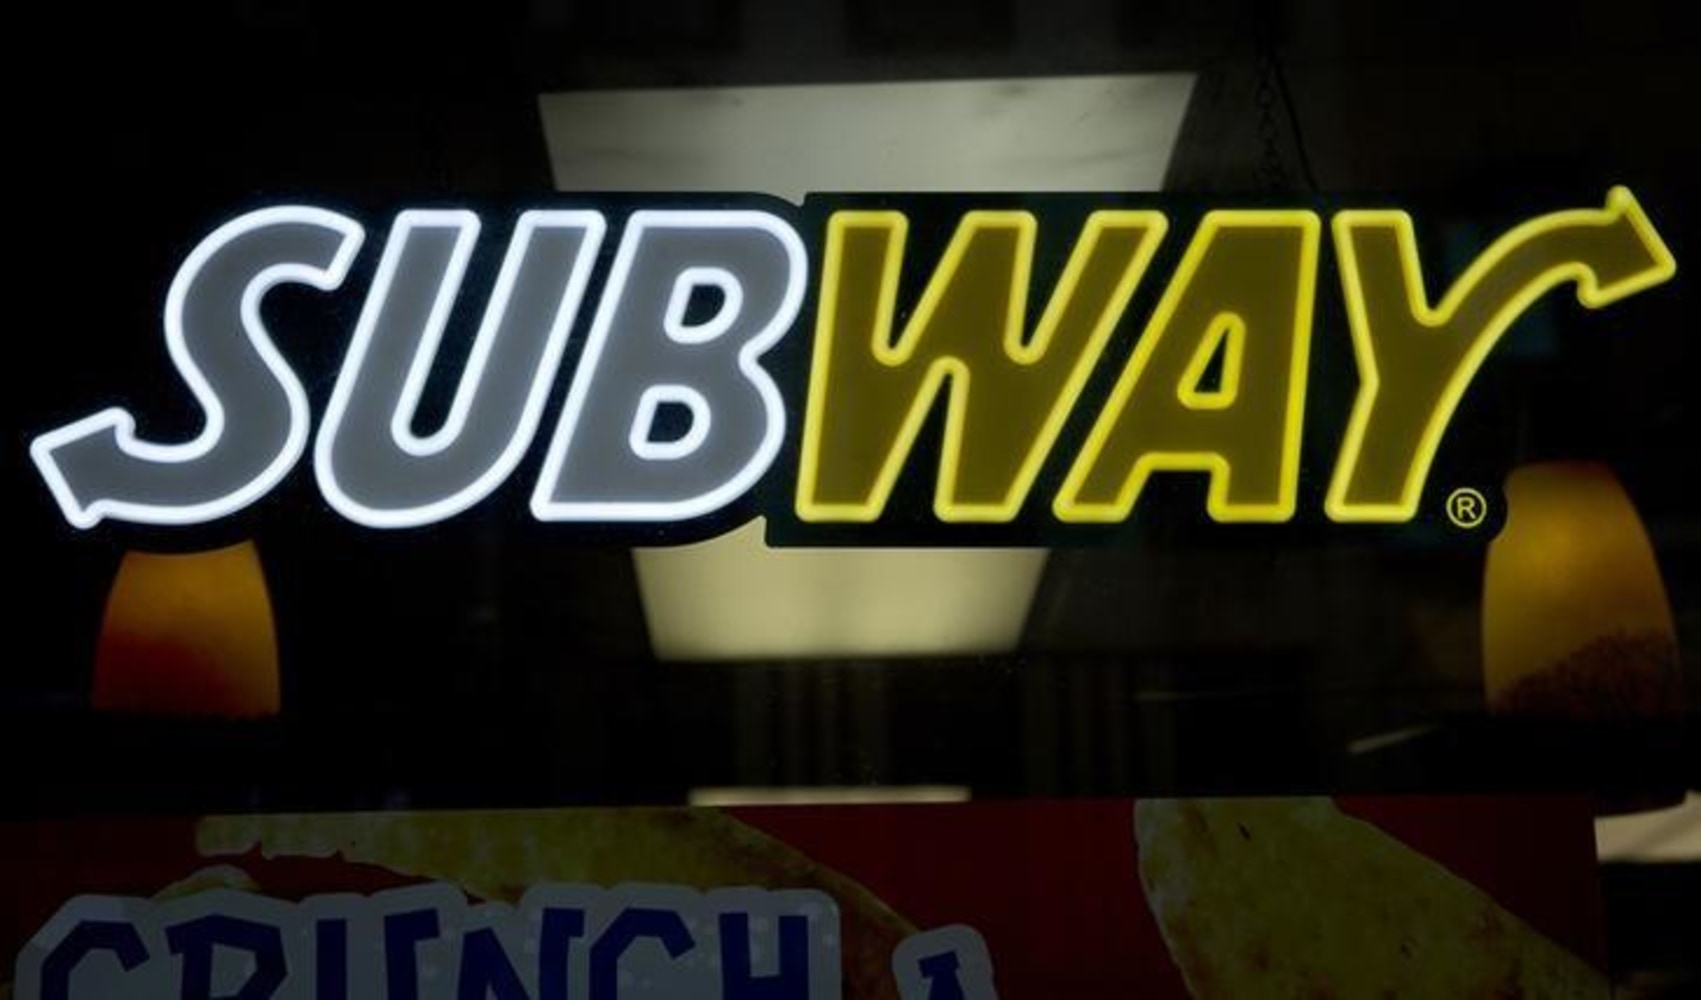 Subway 'chicken' sandwiches contain just 50% chicken DNA, report claims